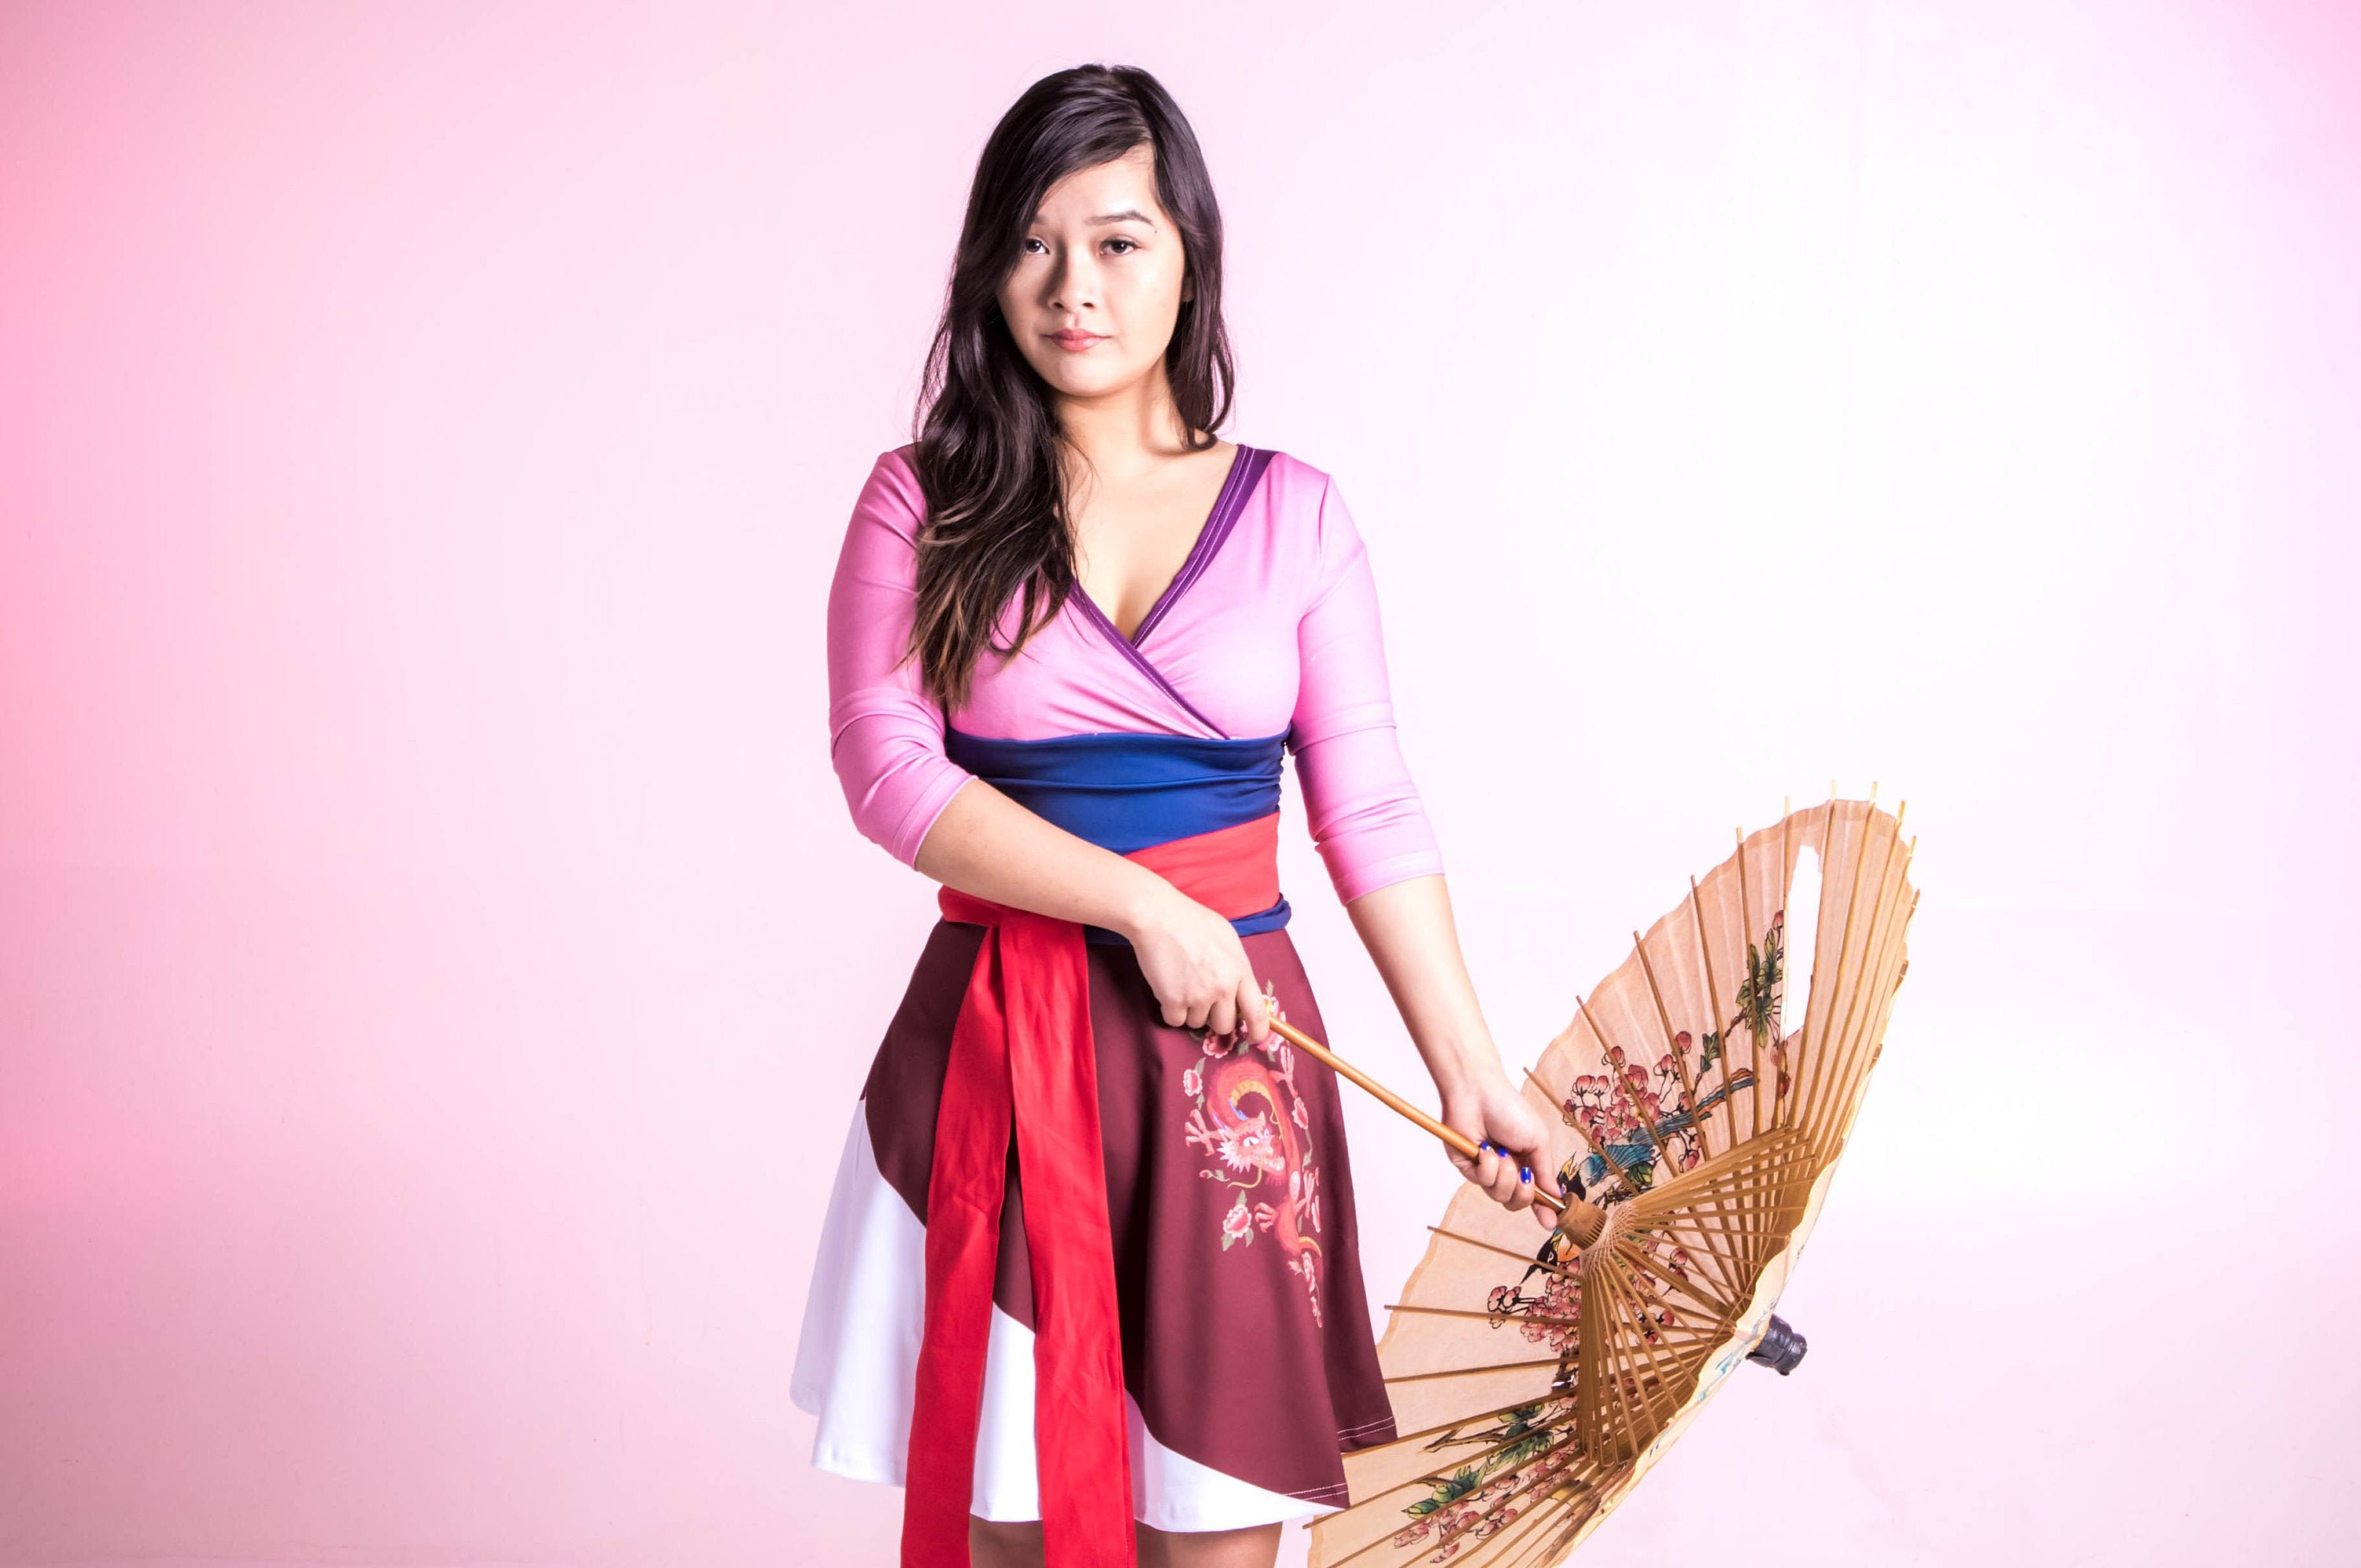 Asian woman in traditional attire